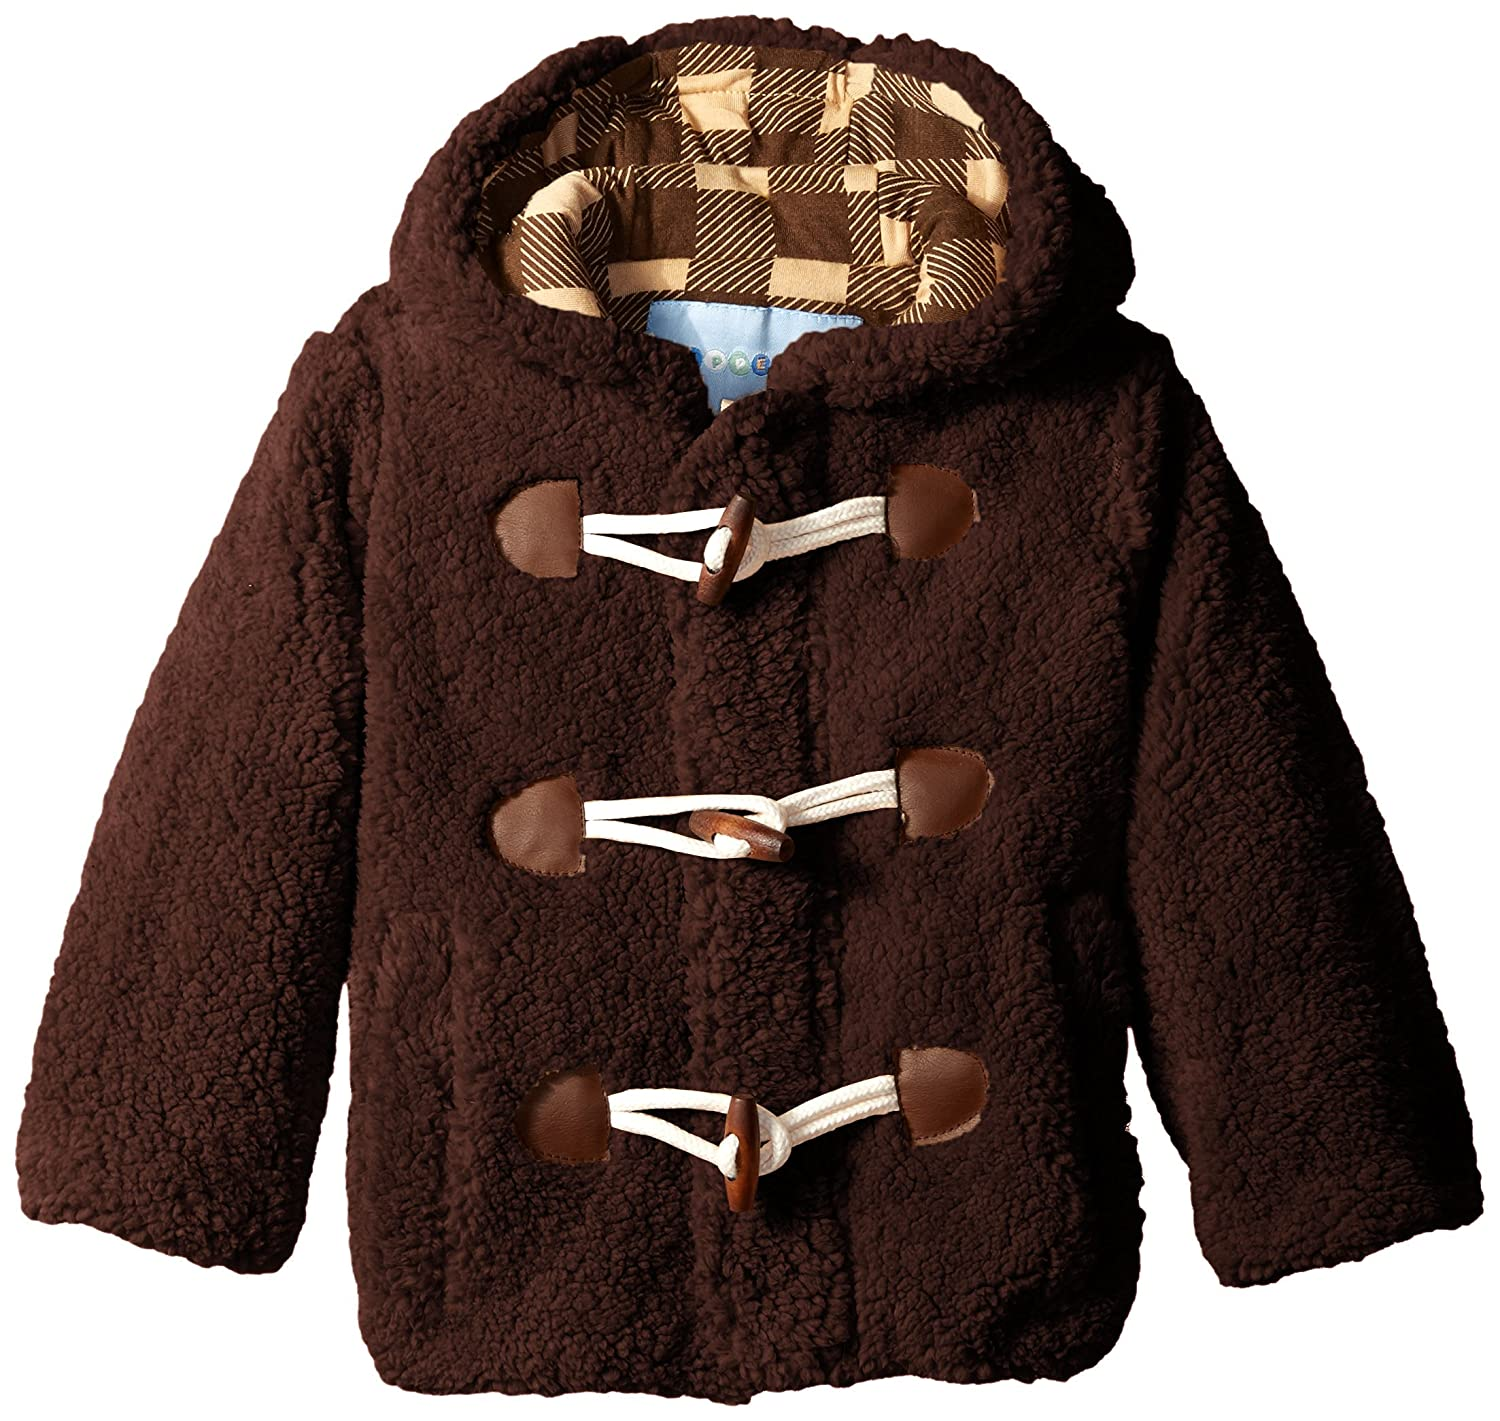 Wippette boys Little Little Boys' Wooly Fleece Toggle Coat Wippette Boys 2-7 child code WB73043